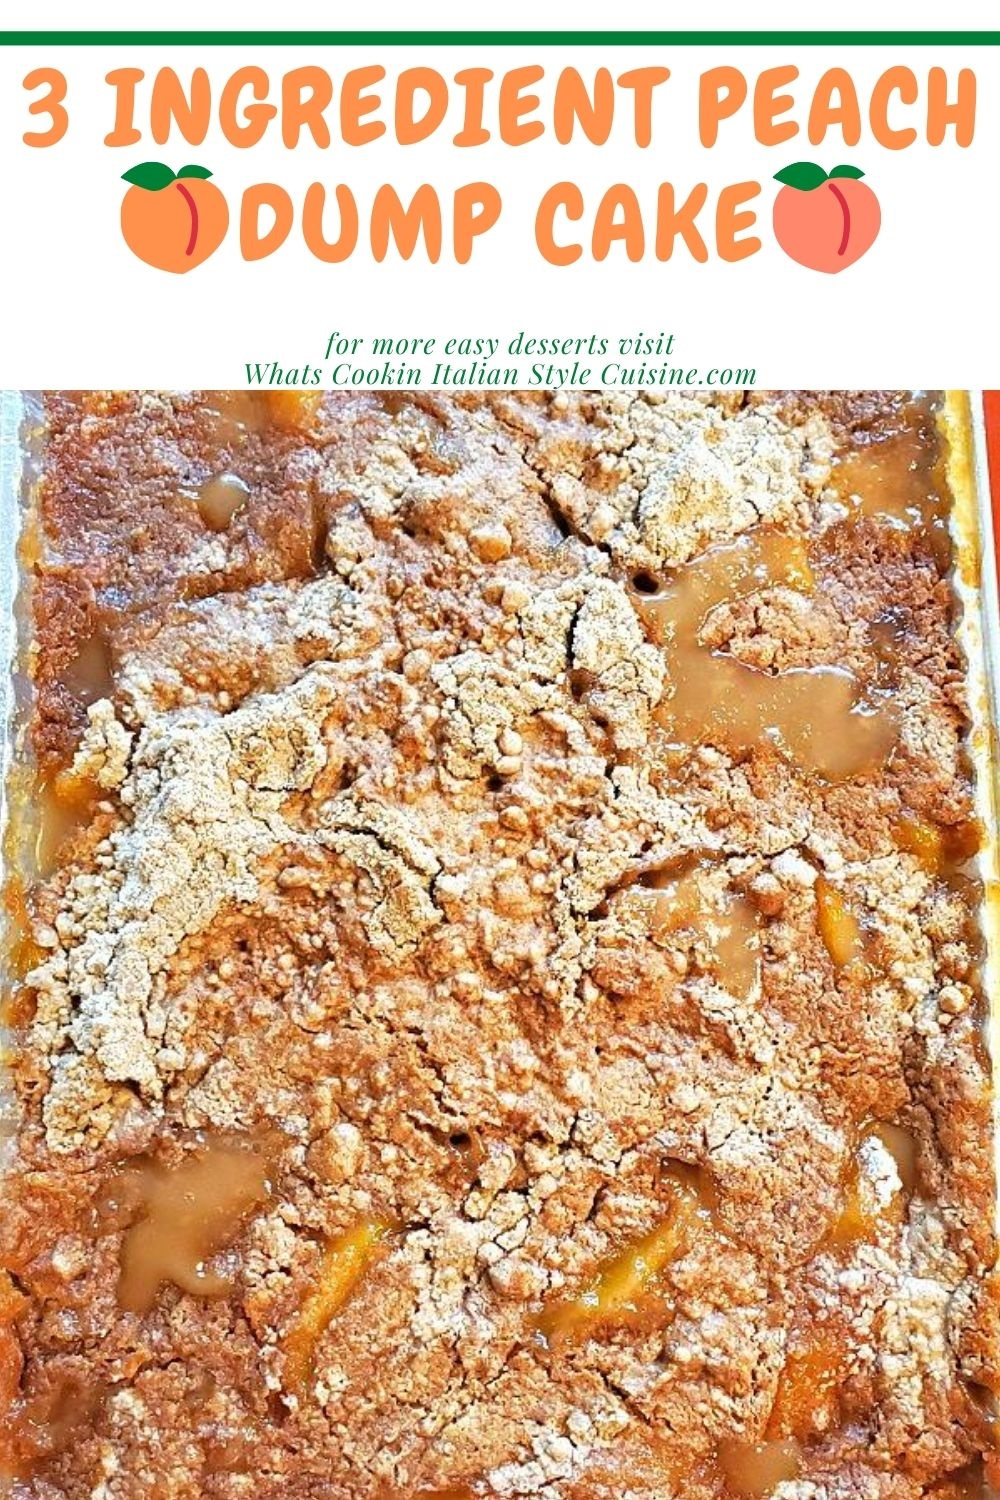 pin for later on how to make dump cake with 3 ingredients